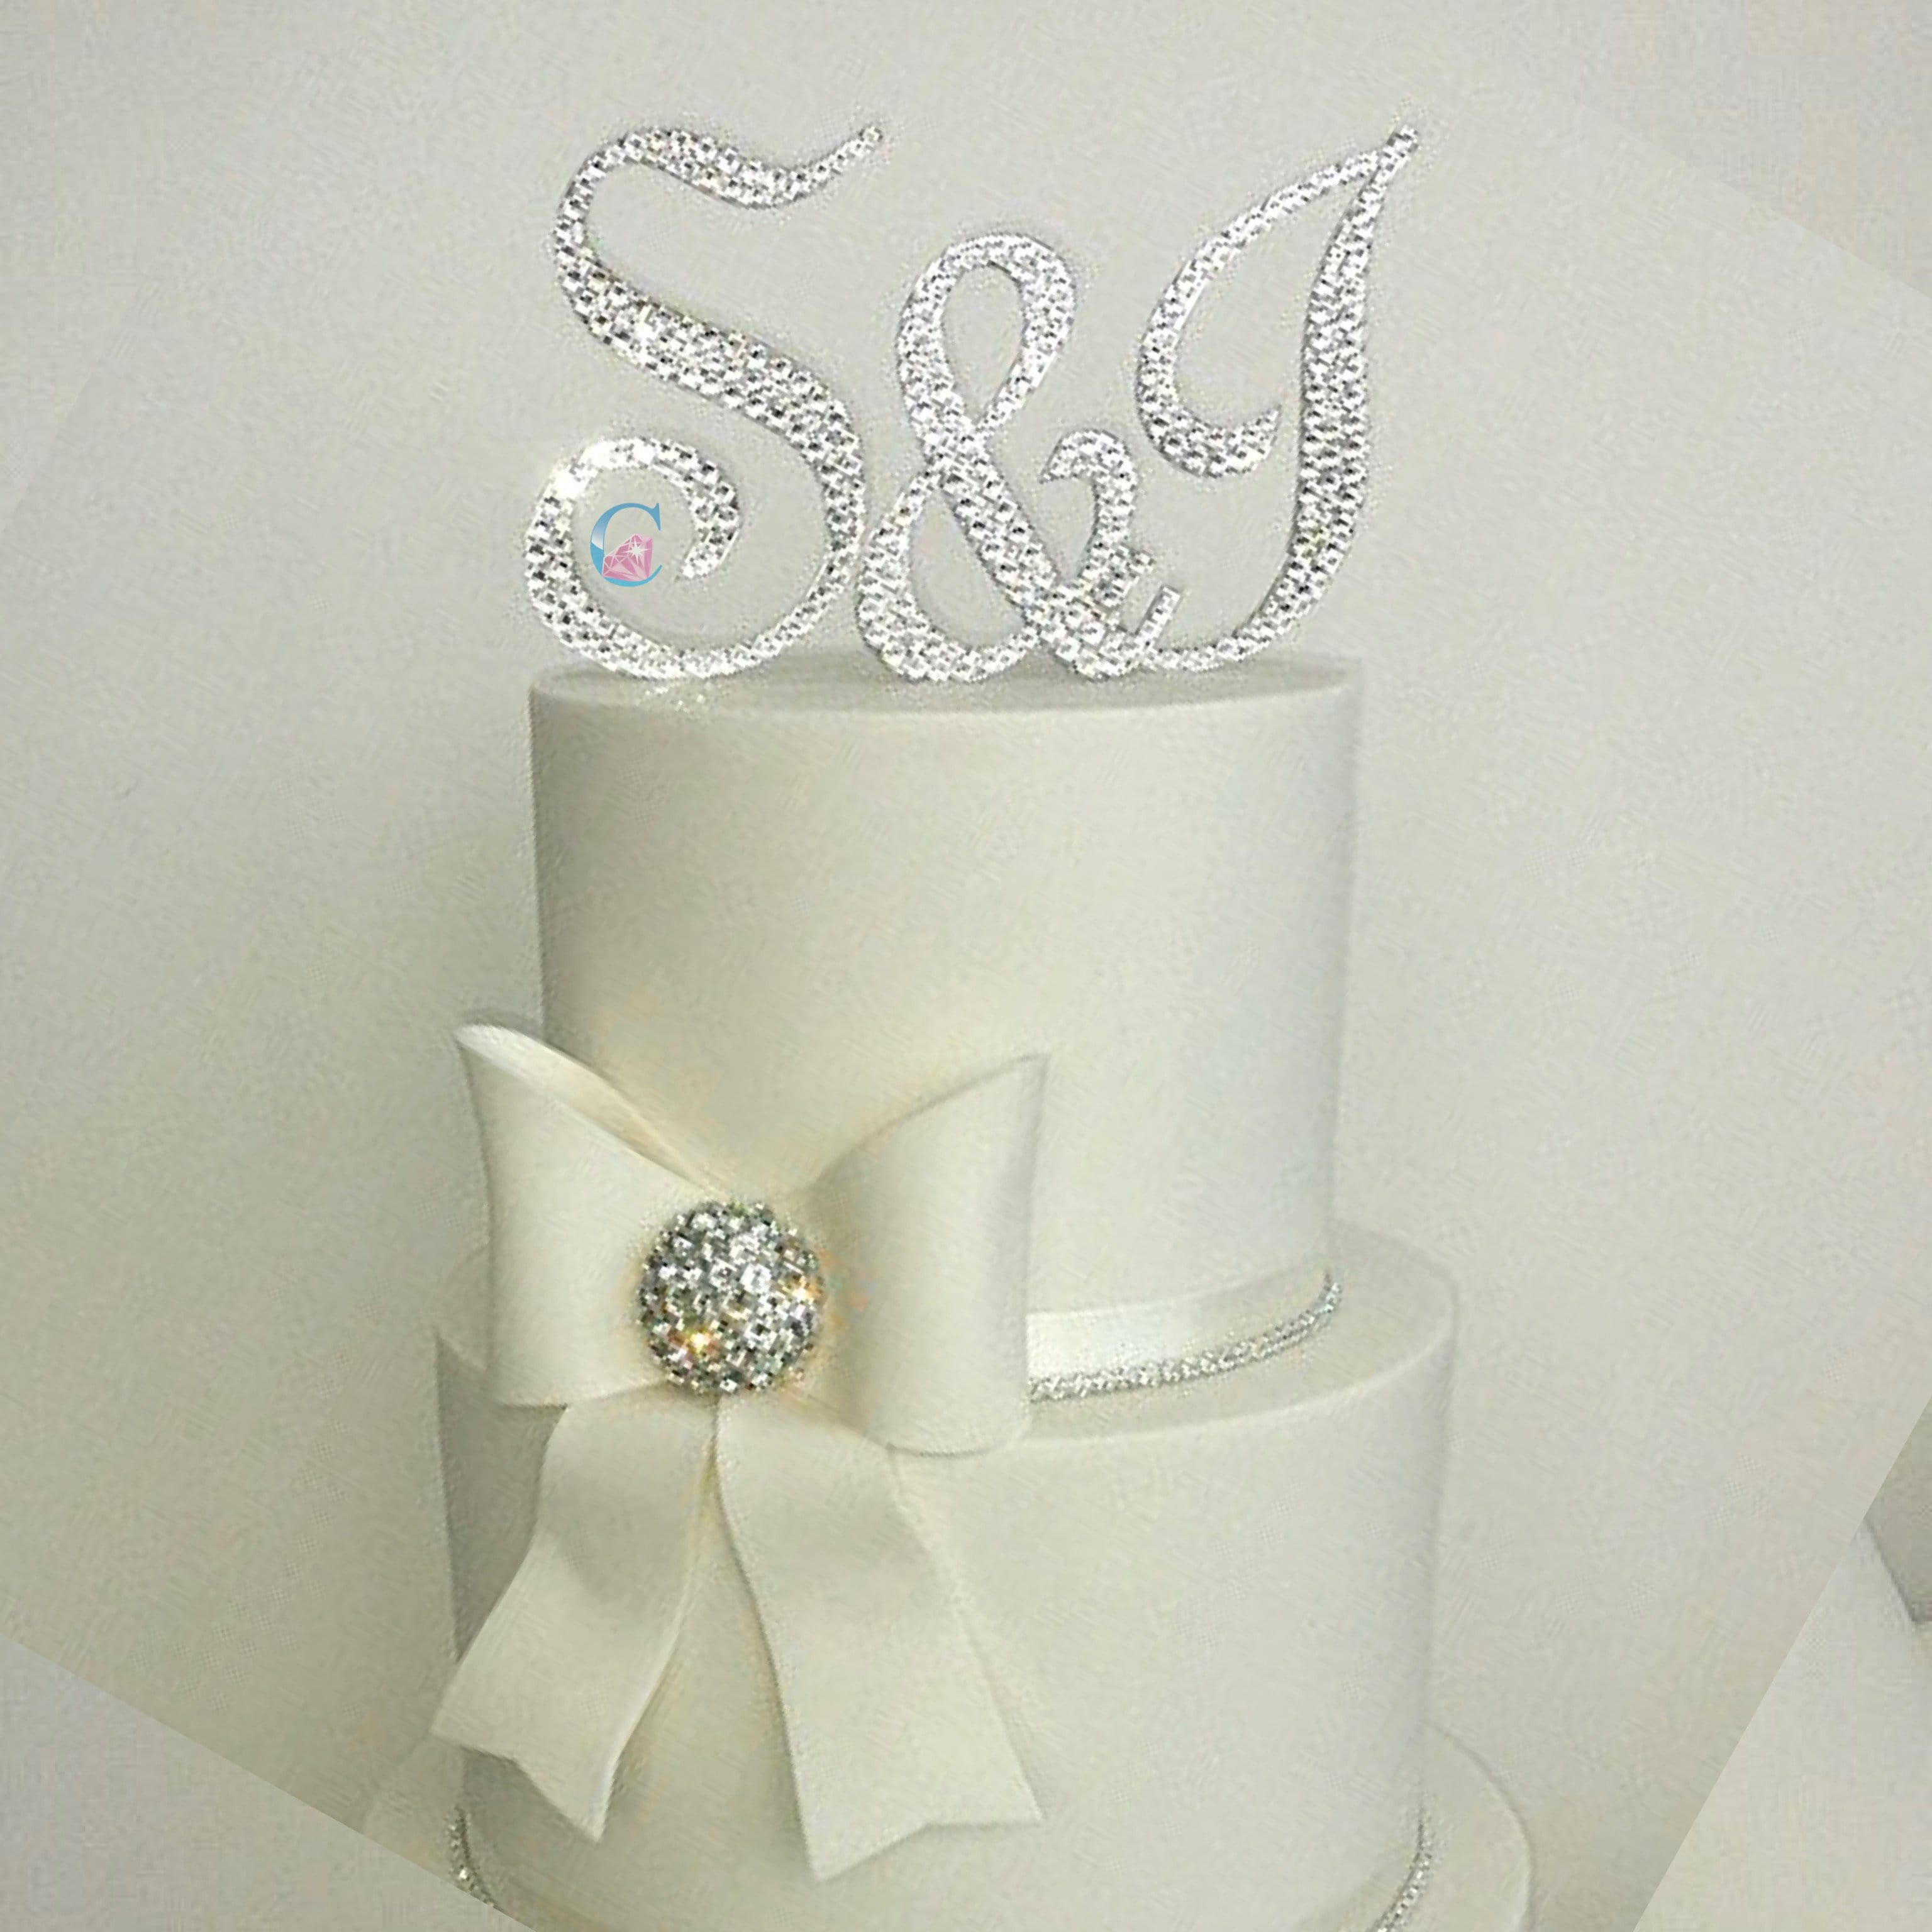 Set of 3 - Crystal embellished Monogram Initials Cake Topper - Typo Upright BT* - It's Crystalicious®